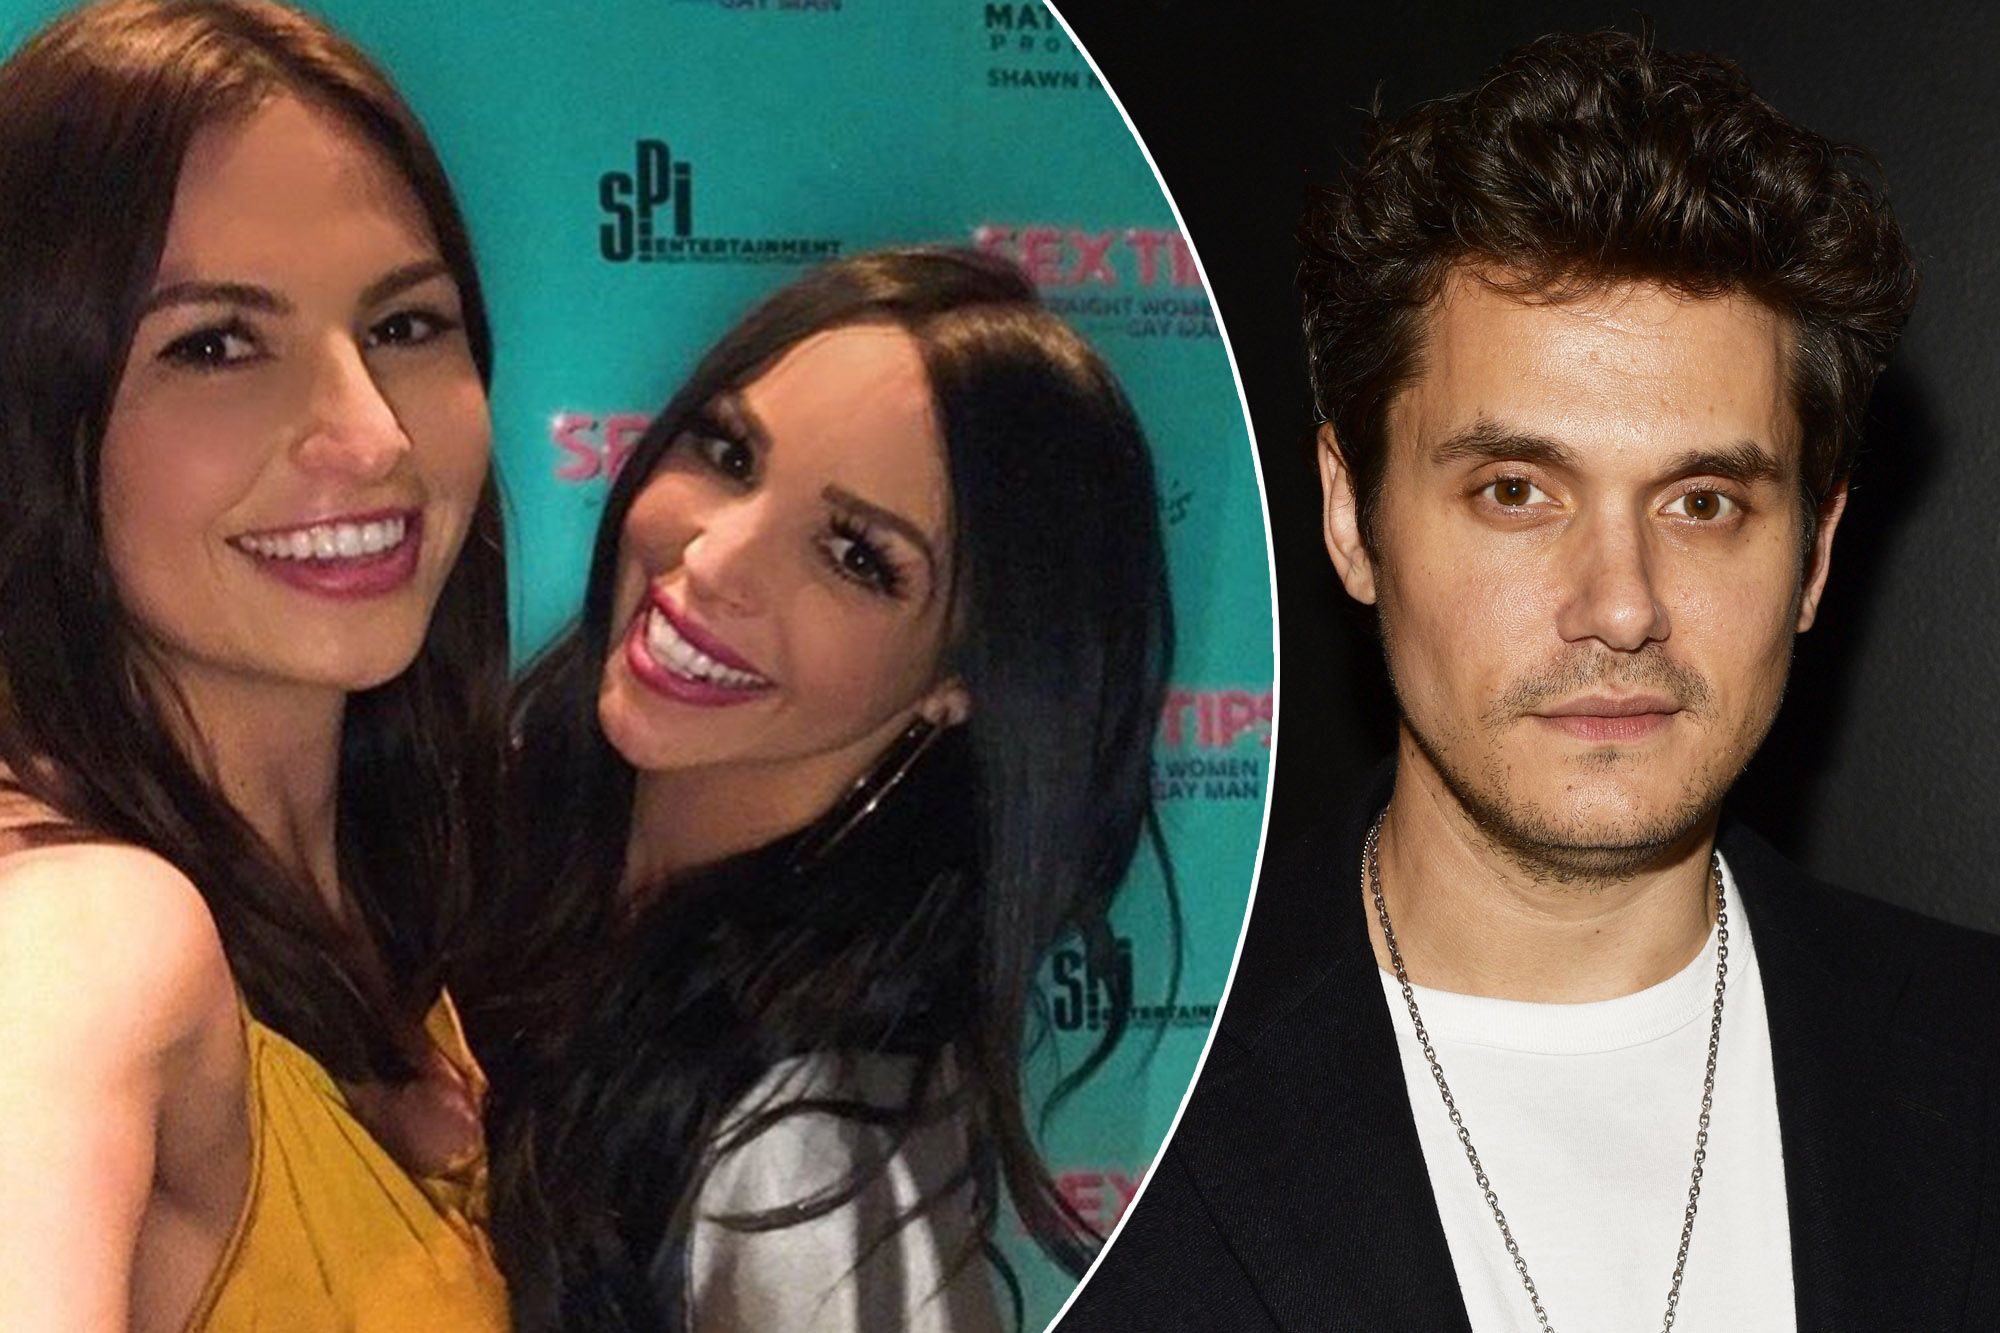 scheana-shay-reveals-that-she-john-mayer-and-stacie-adams-were-a-throuple